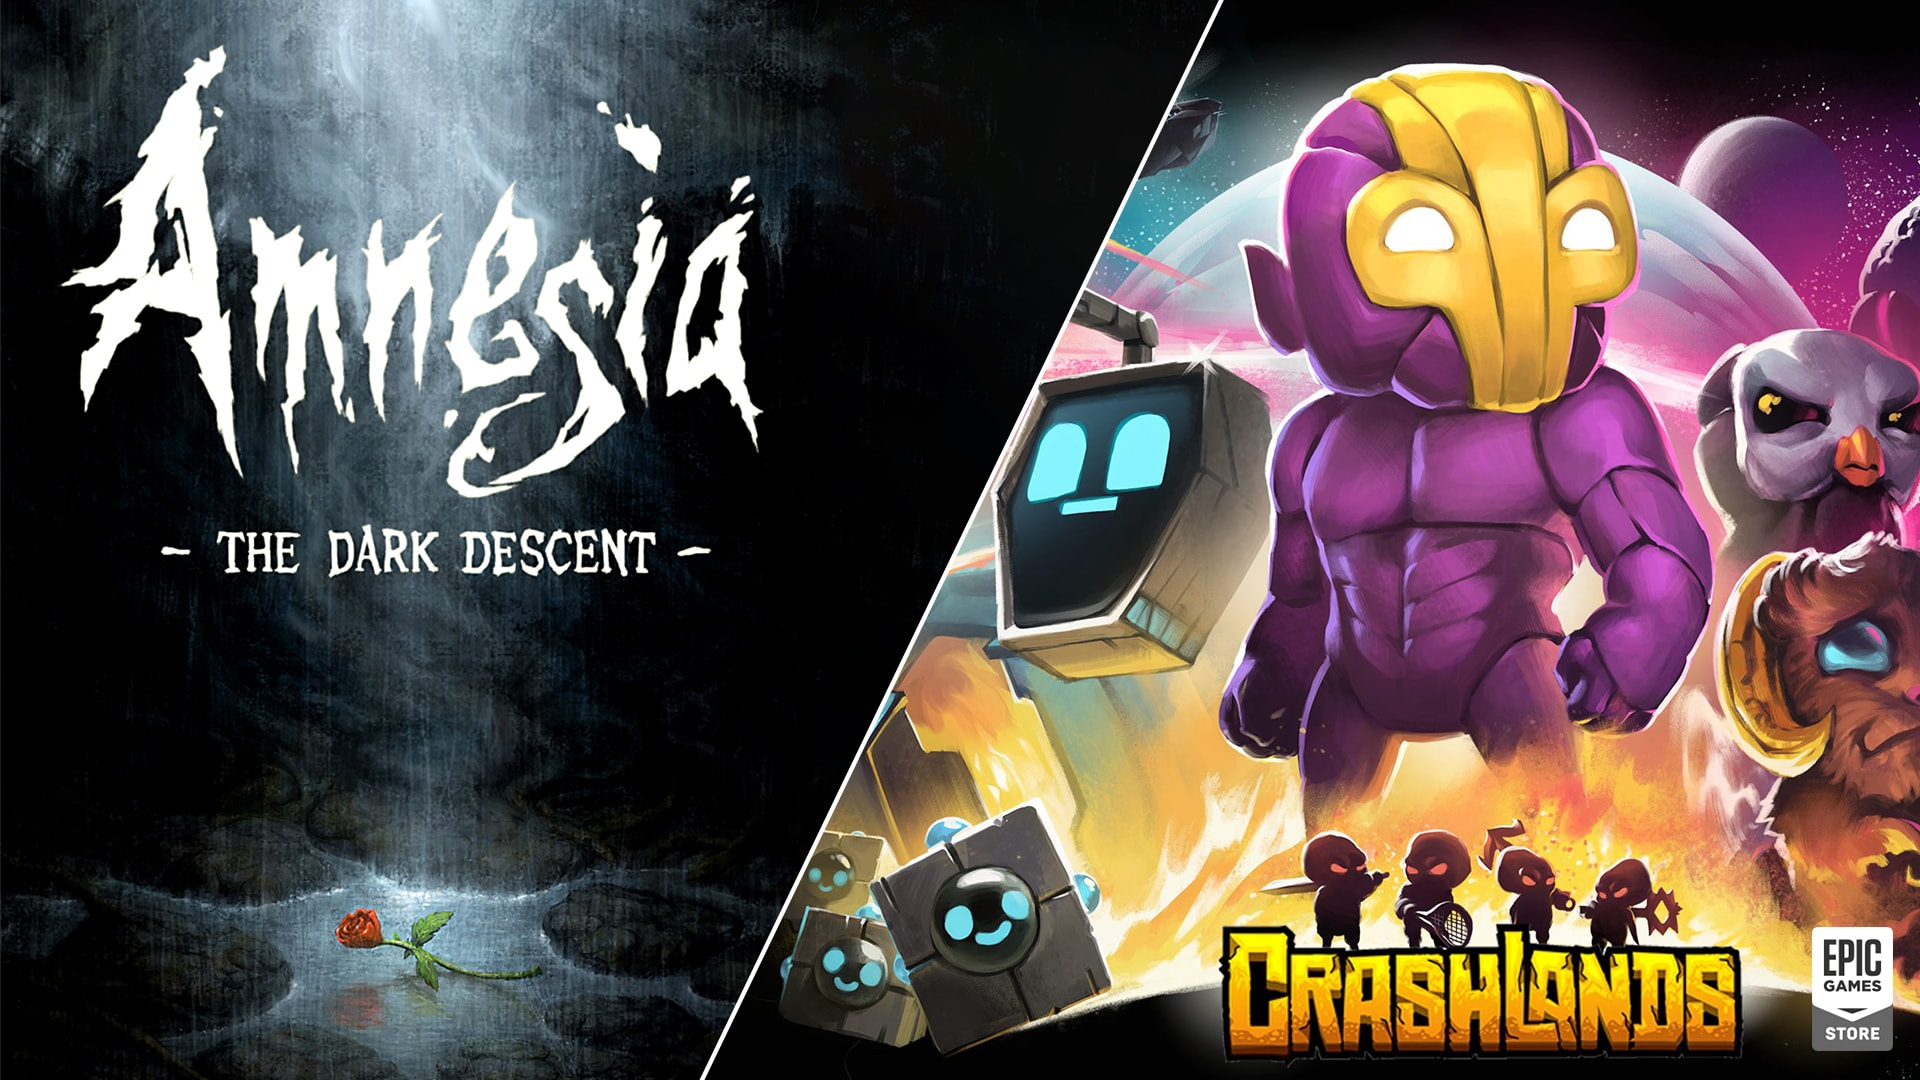 Amnesia: The Dark Descent and Crashlands are free on the Epic Games Store